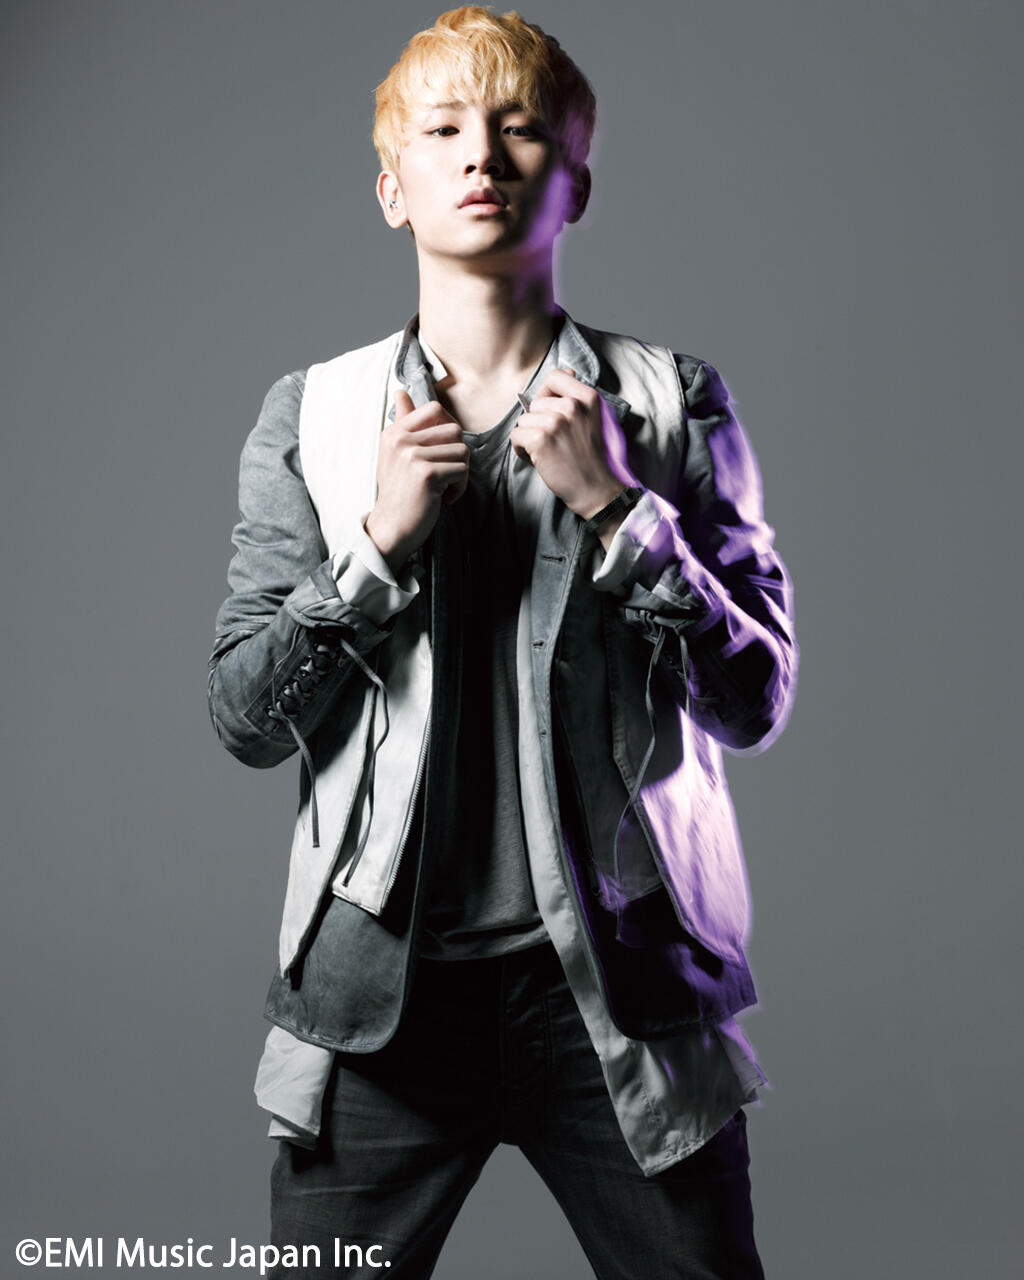 Shineekey naver images6fanpop voltagebd Image collections